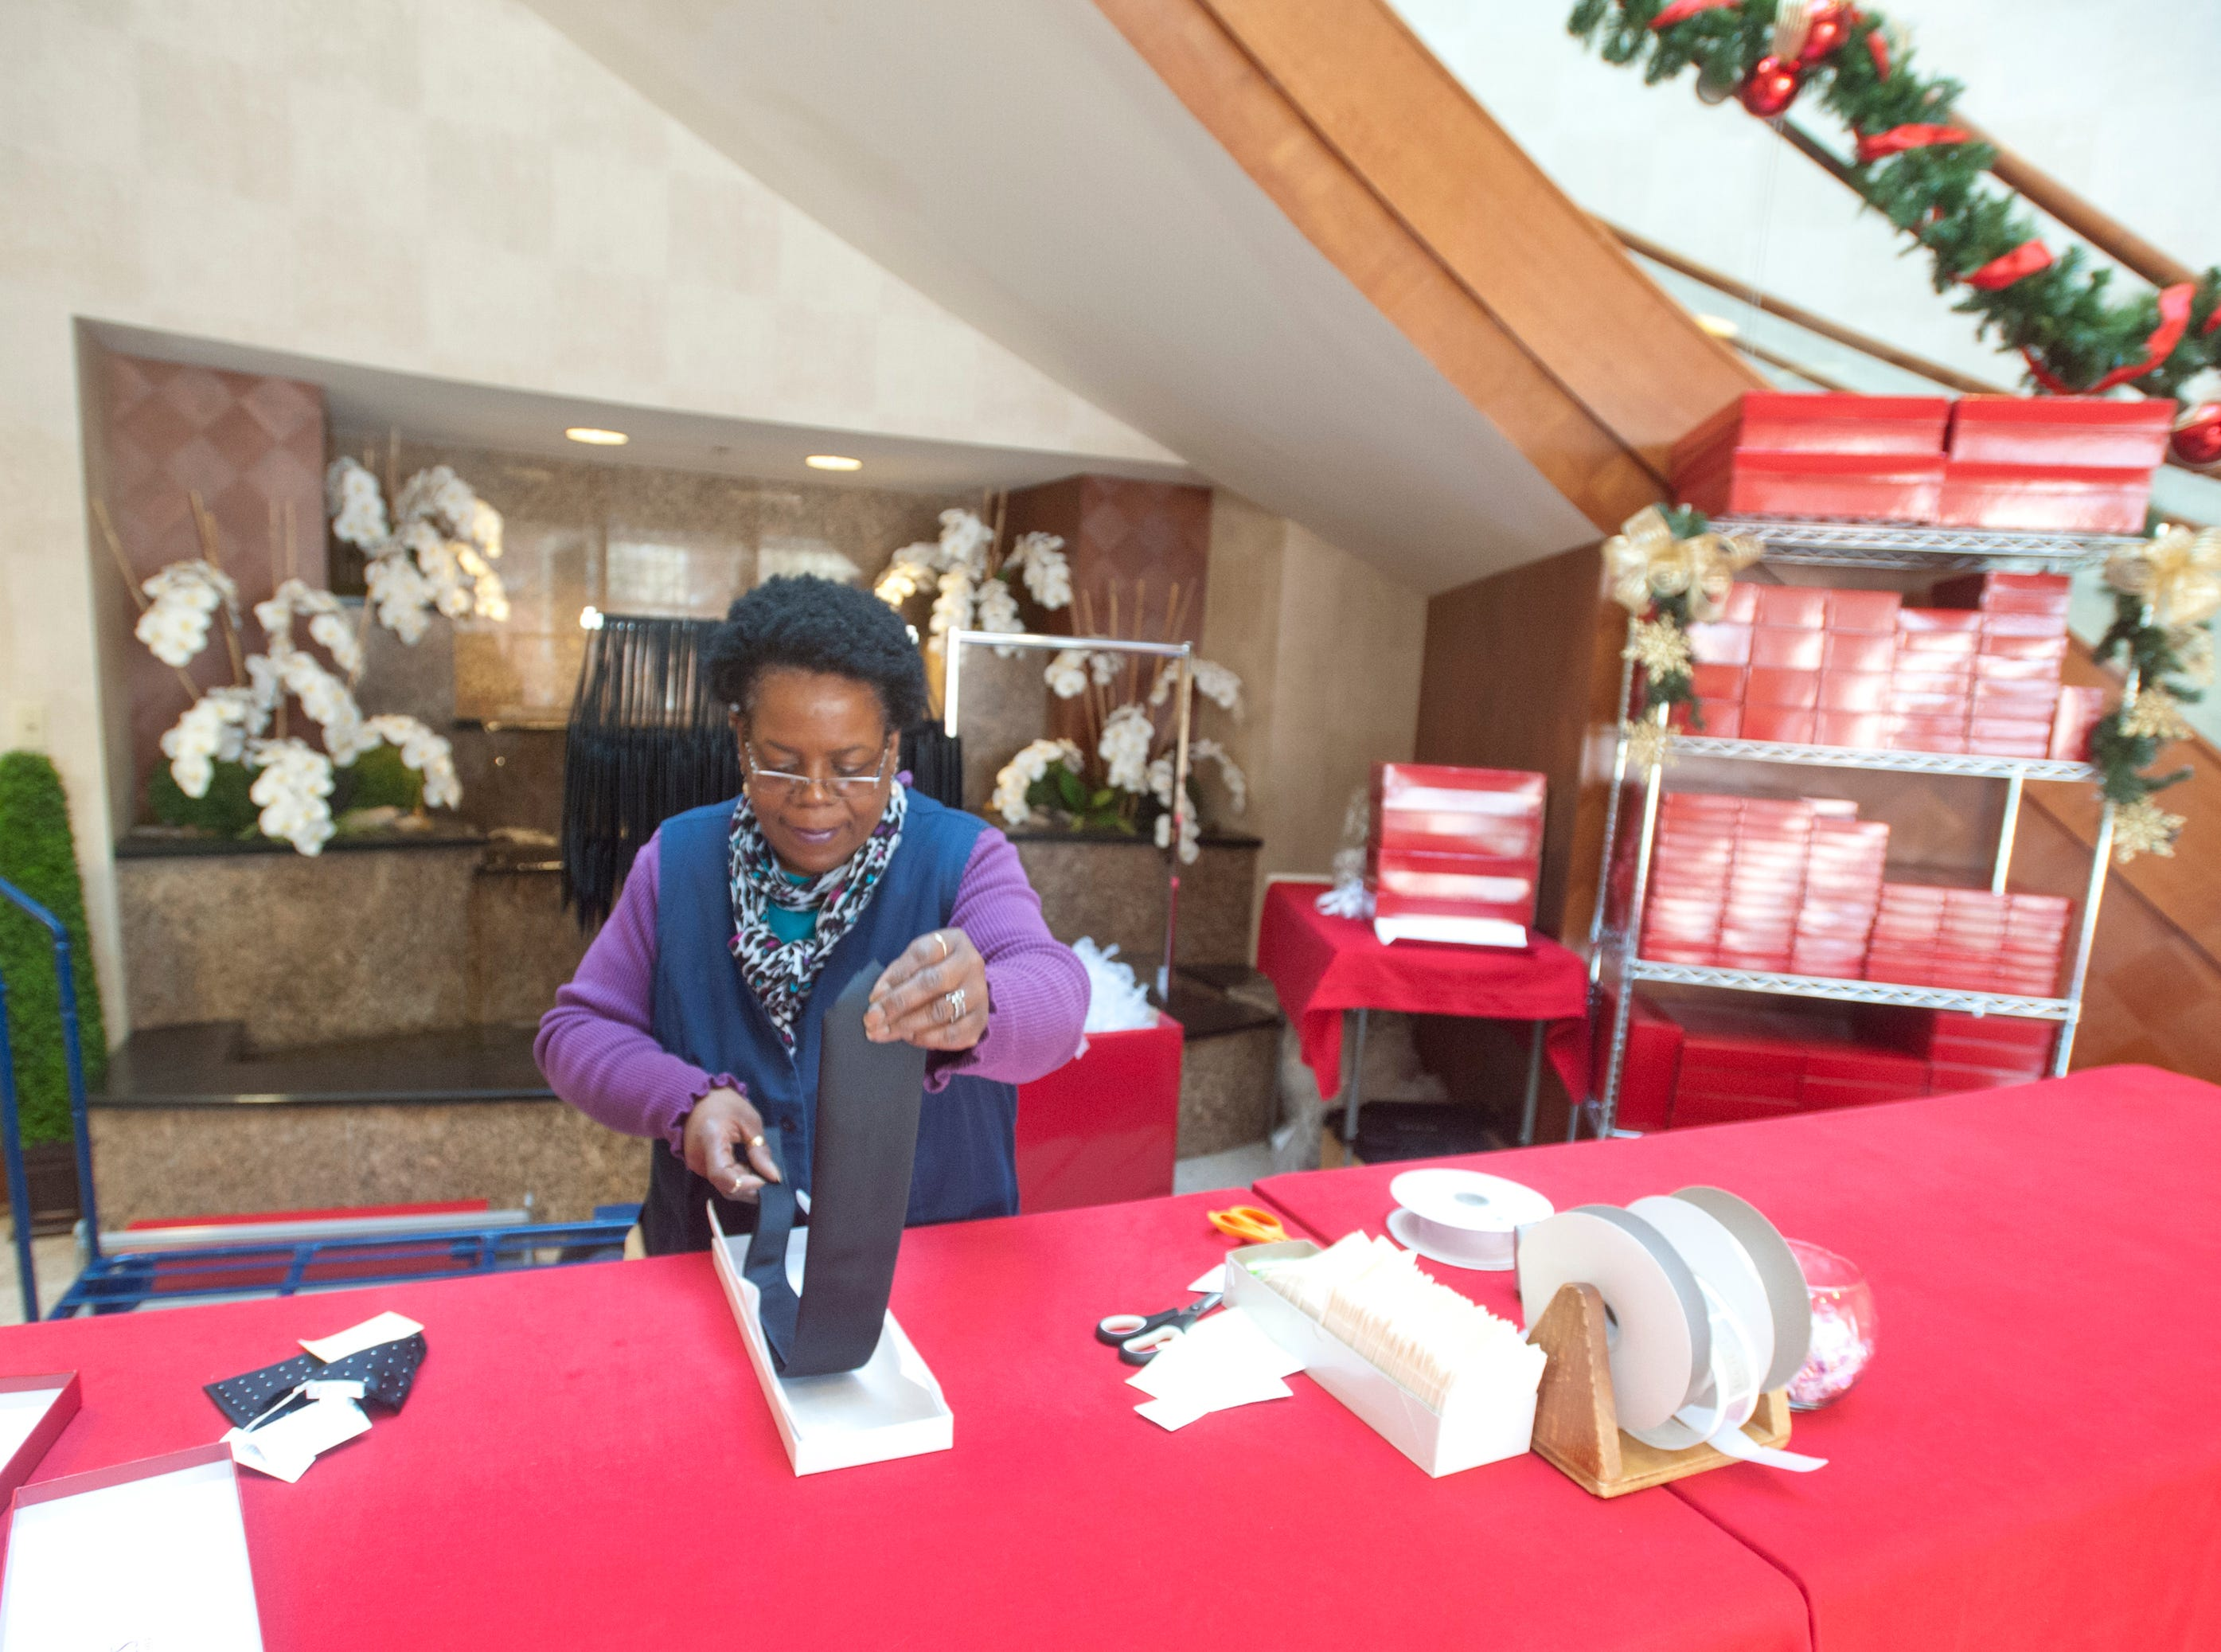 Charlene Dunlap, a shipping and receiving manager for Rodes on Brownsboro Road in Louisville, packages a tie before decorating the box a holiday wrapping station between the Rodes for Men and Rodes for Women stores.